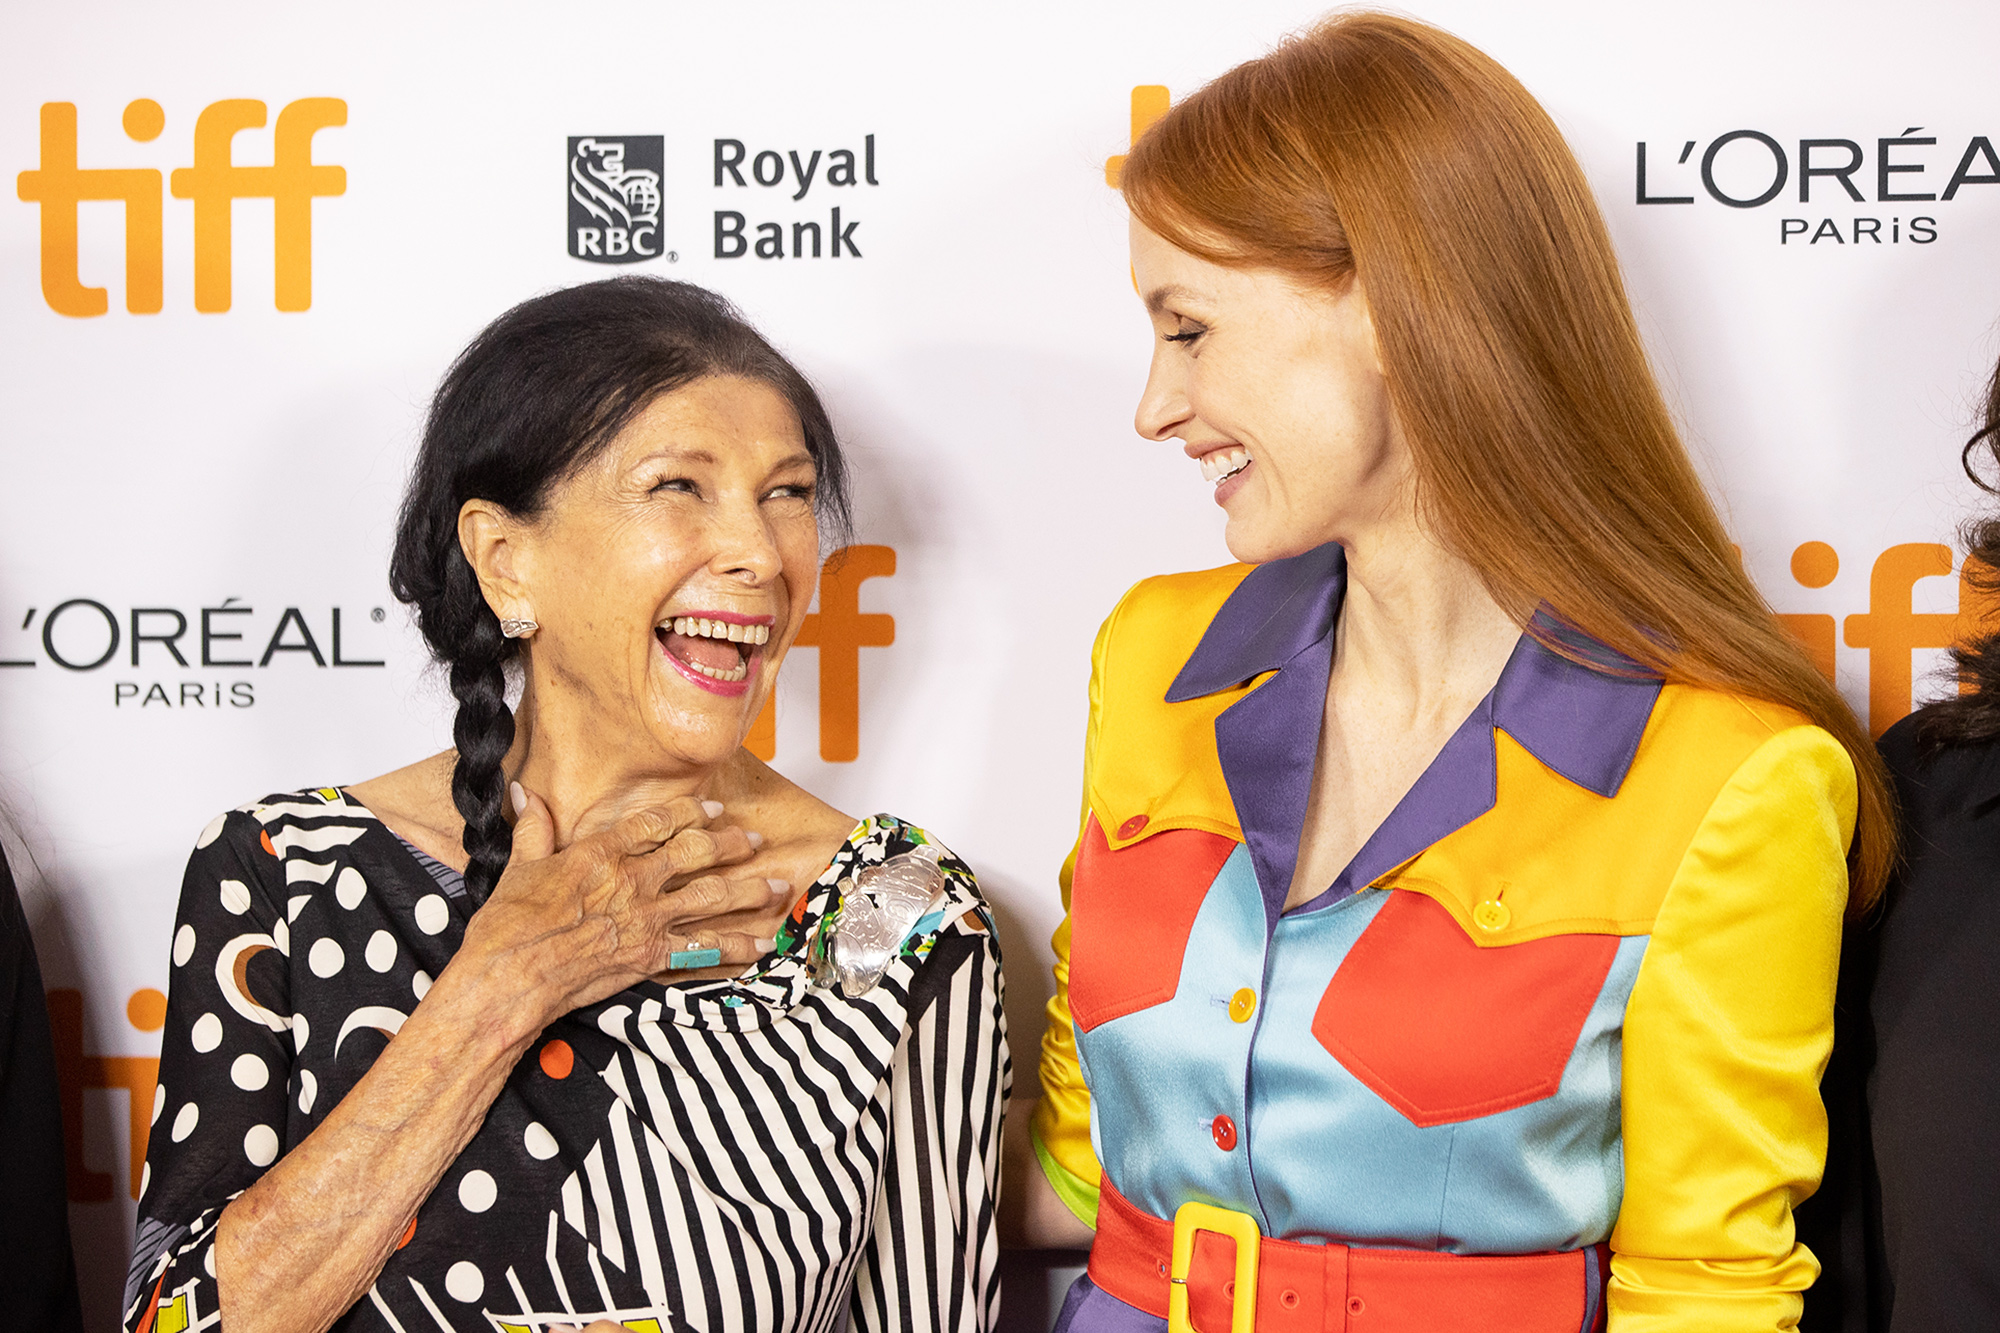 Alanis Obomsawin and Jessica Chastain attend the 2021 TIFF Tribute Awards Press Conference at Roy Thomson Hall on September 11, 2021 in Toronto, Ontario.